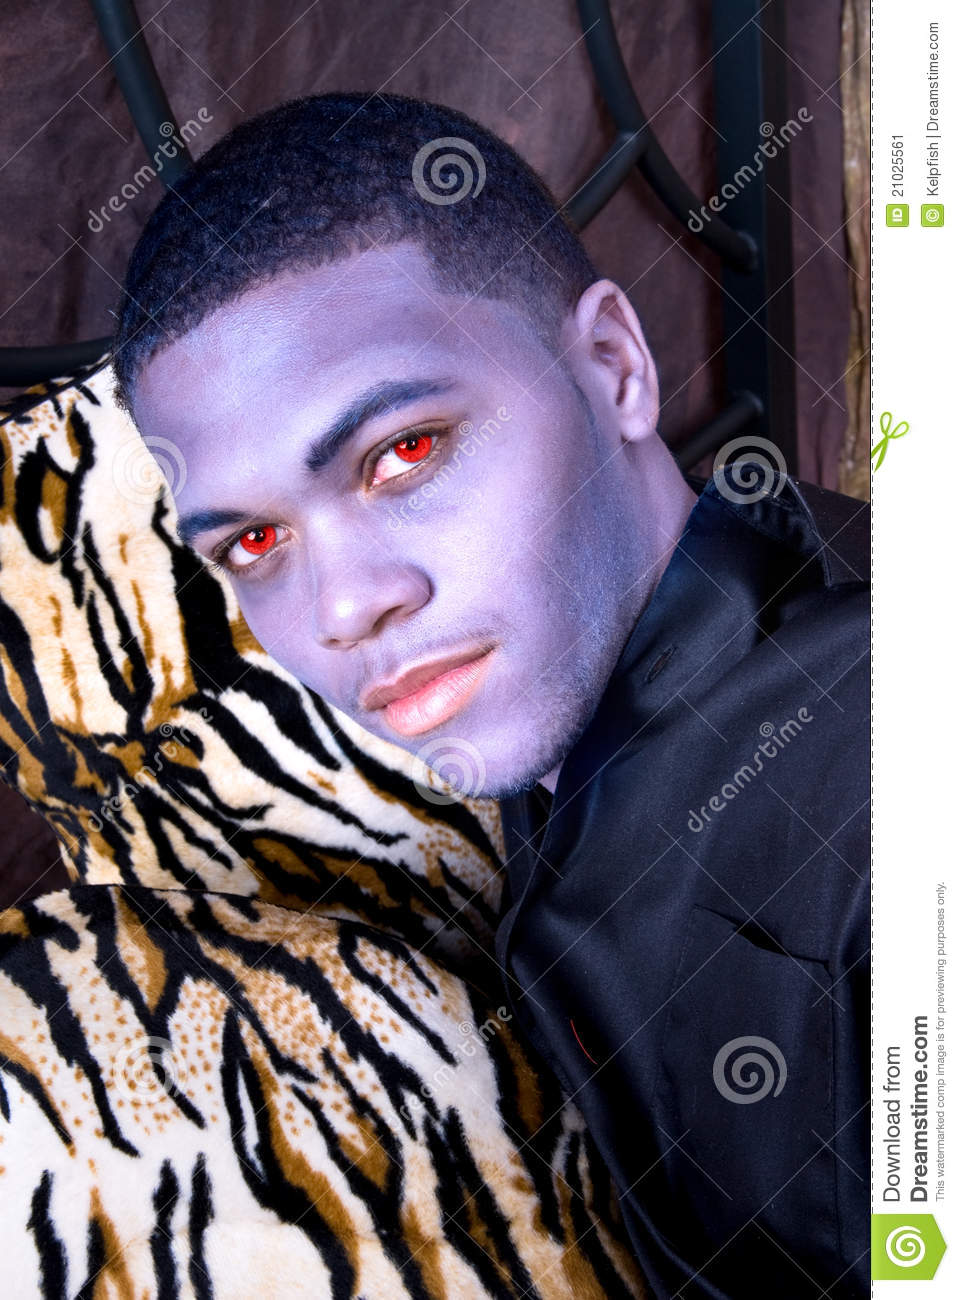 Black vampire stock image. Image of creepy, sensuality ...